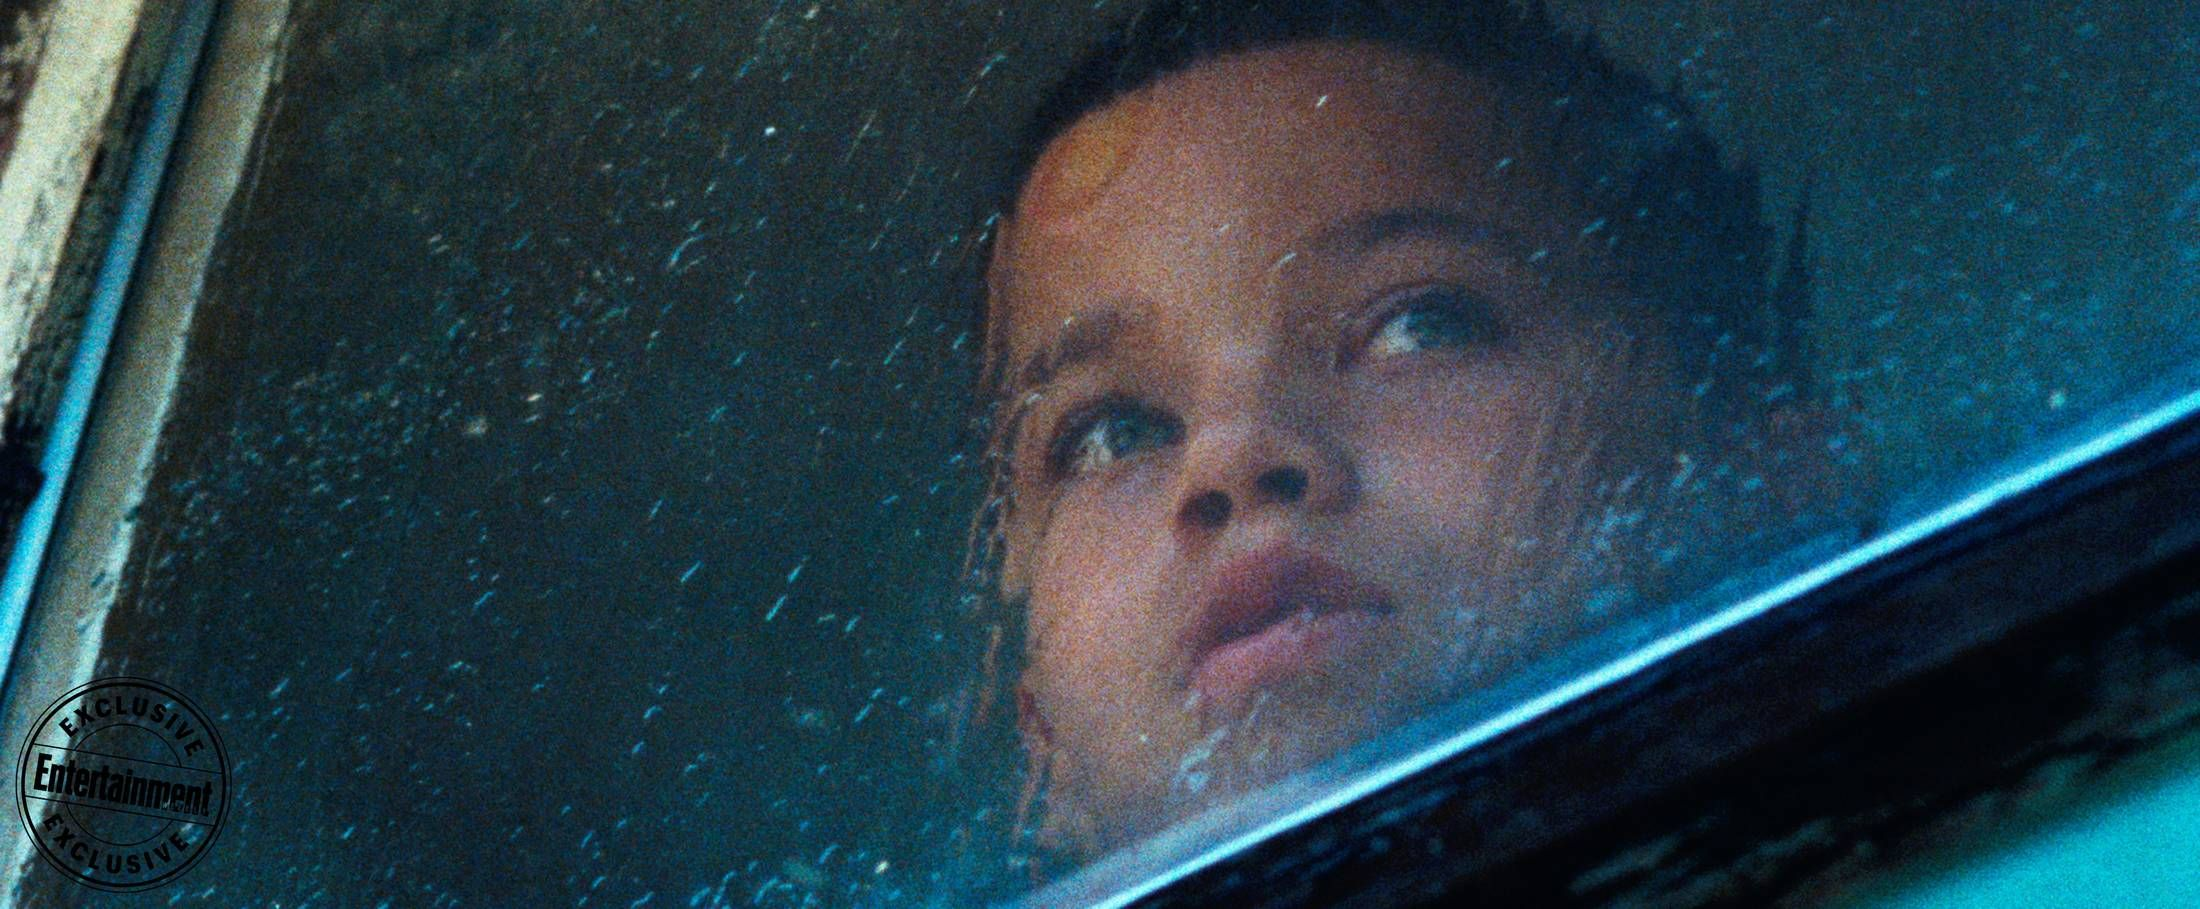 A young boy comes of age in 'We the Animals' exclusive